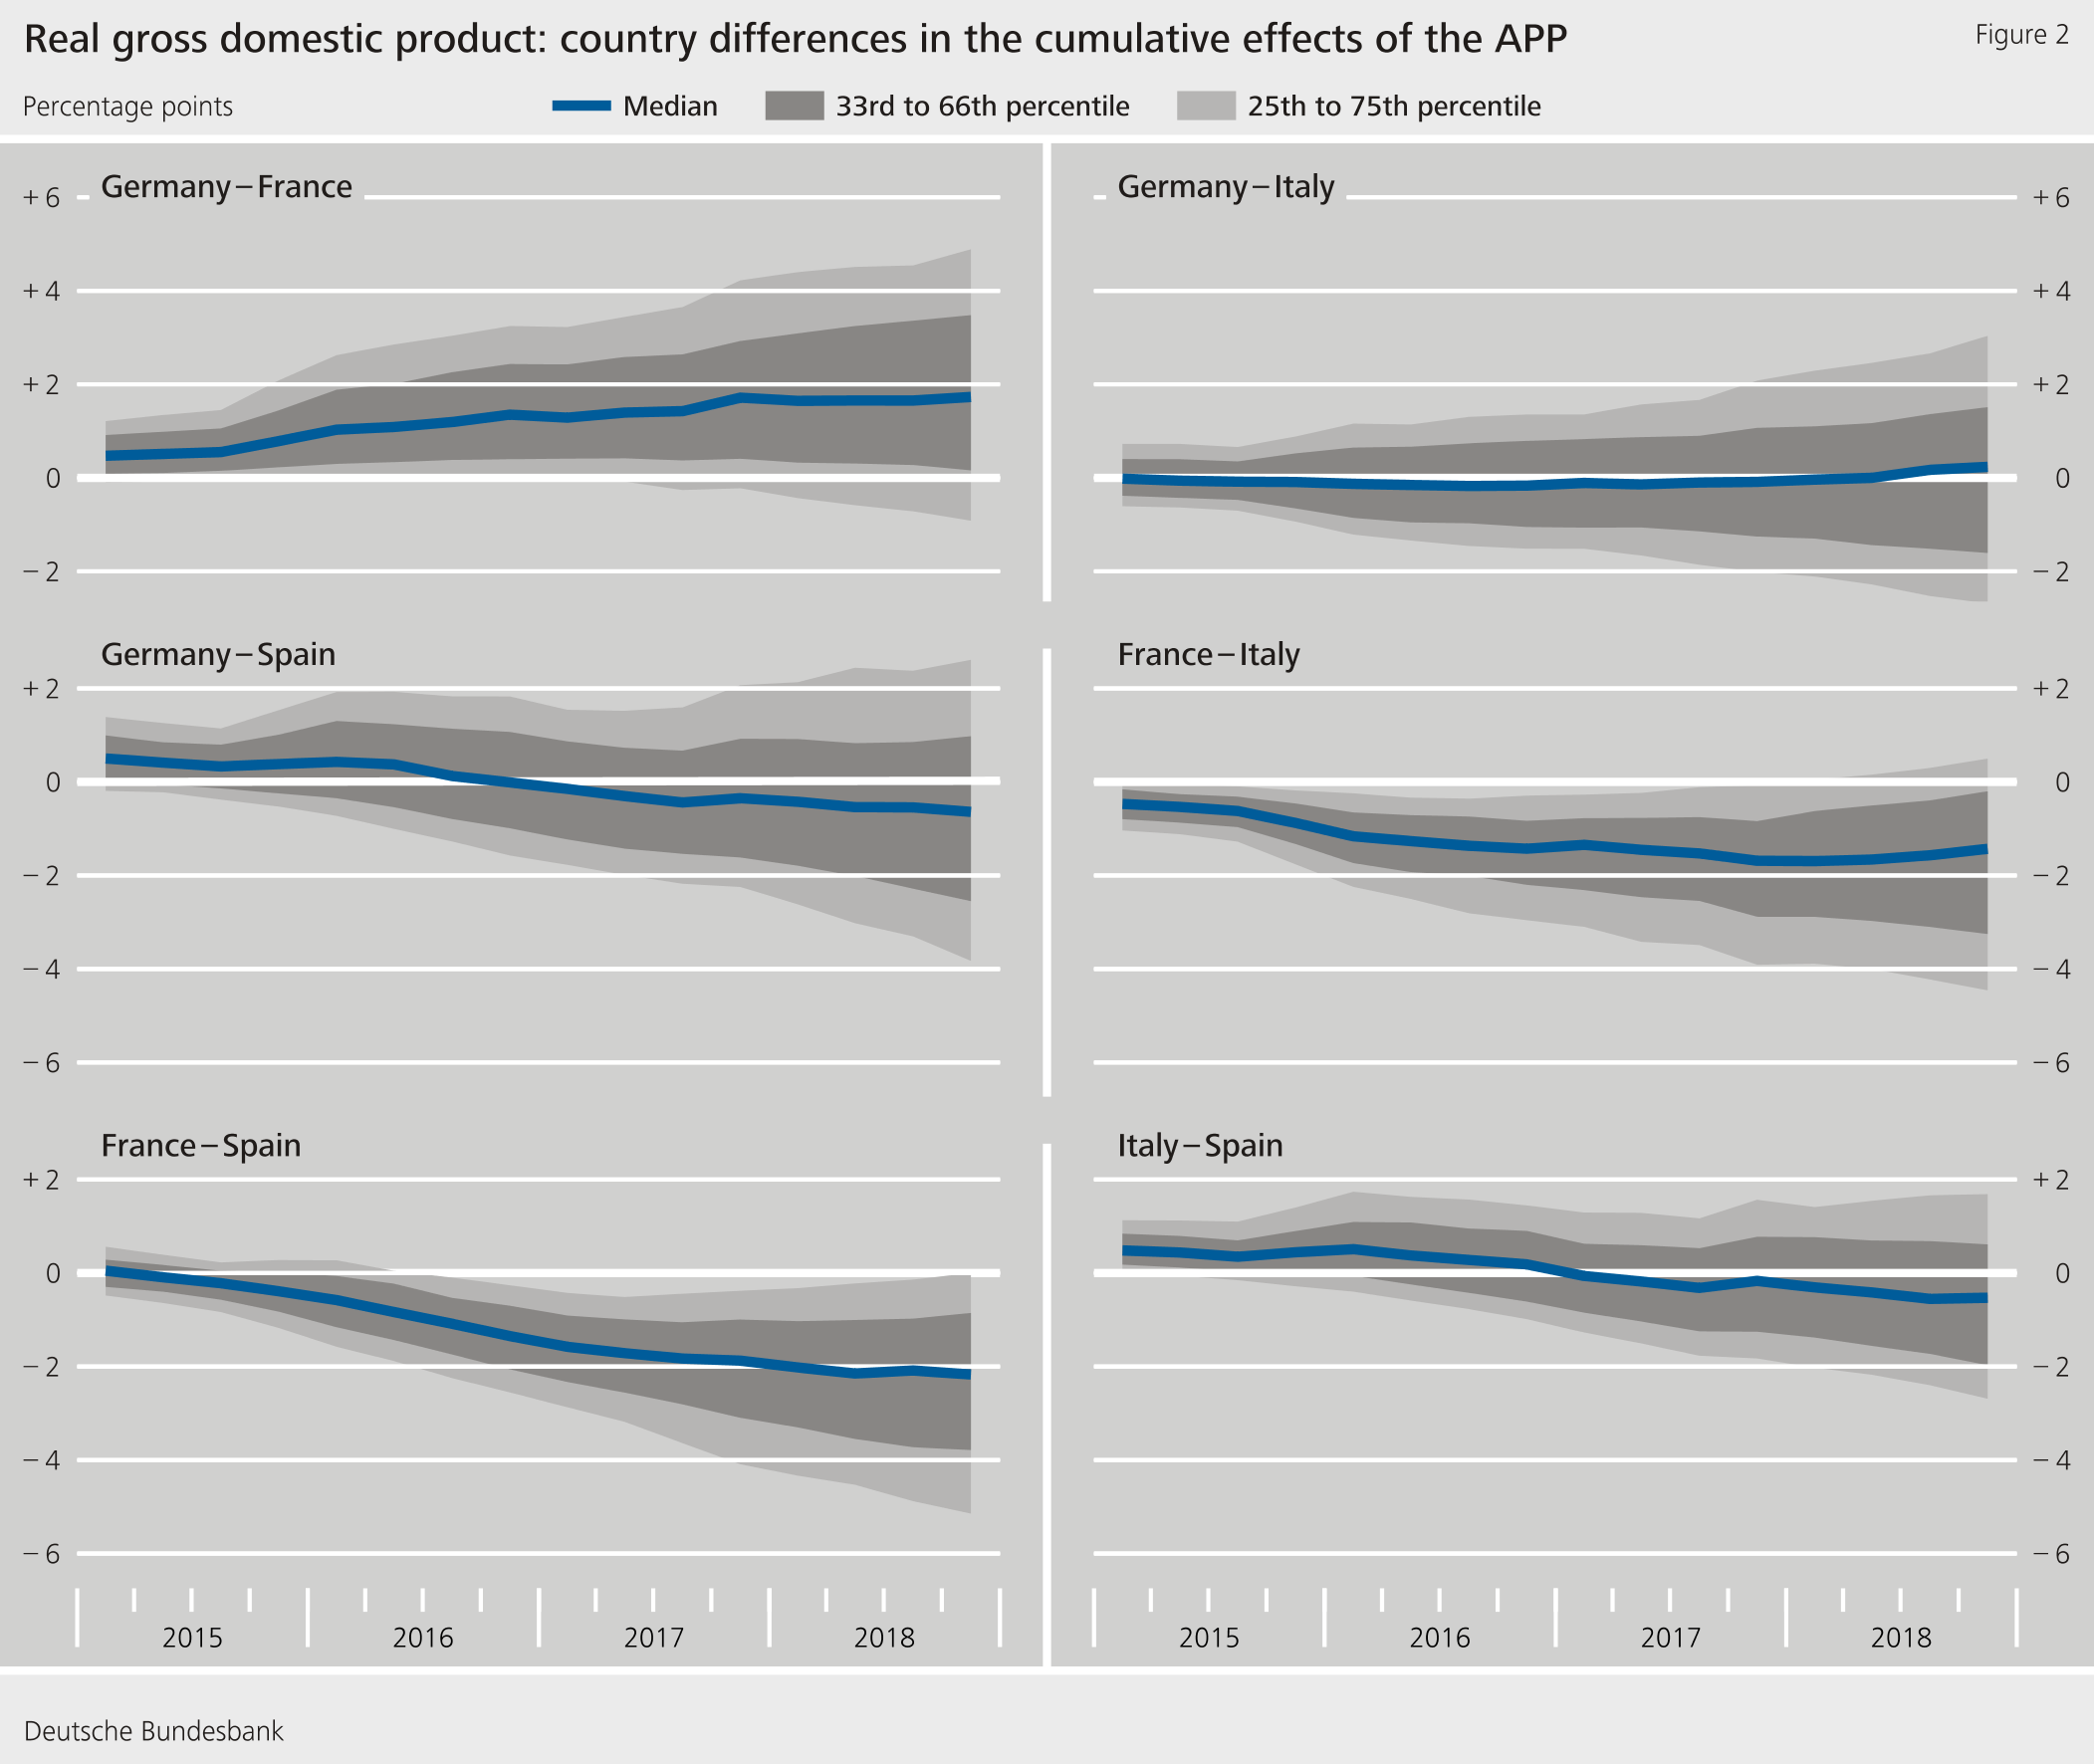 Figure 2: Real gross domestic product: country differences in the cumulative effects of the APP